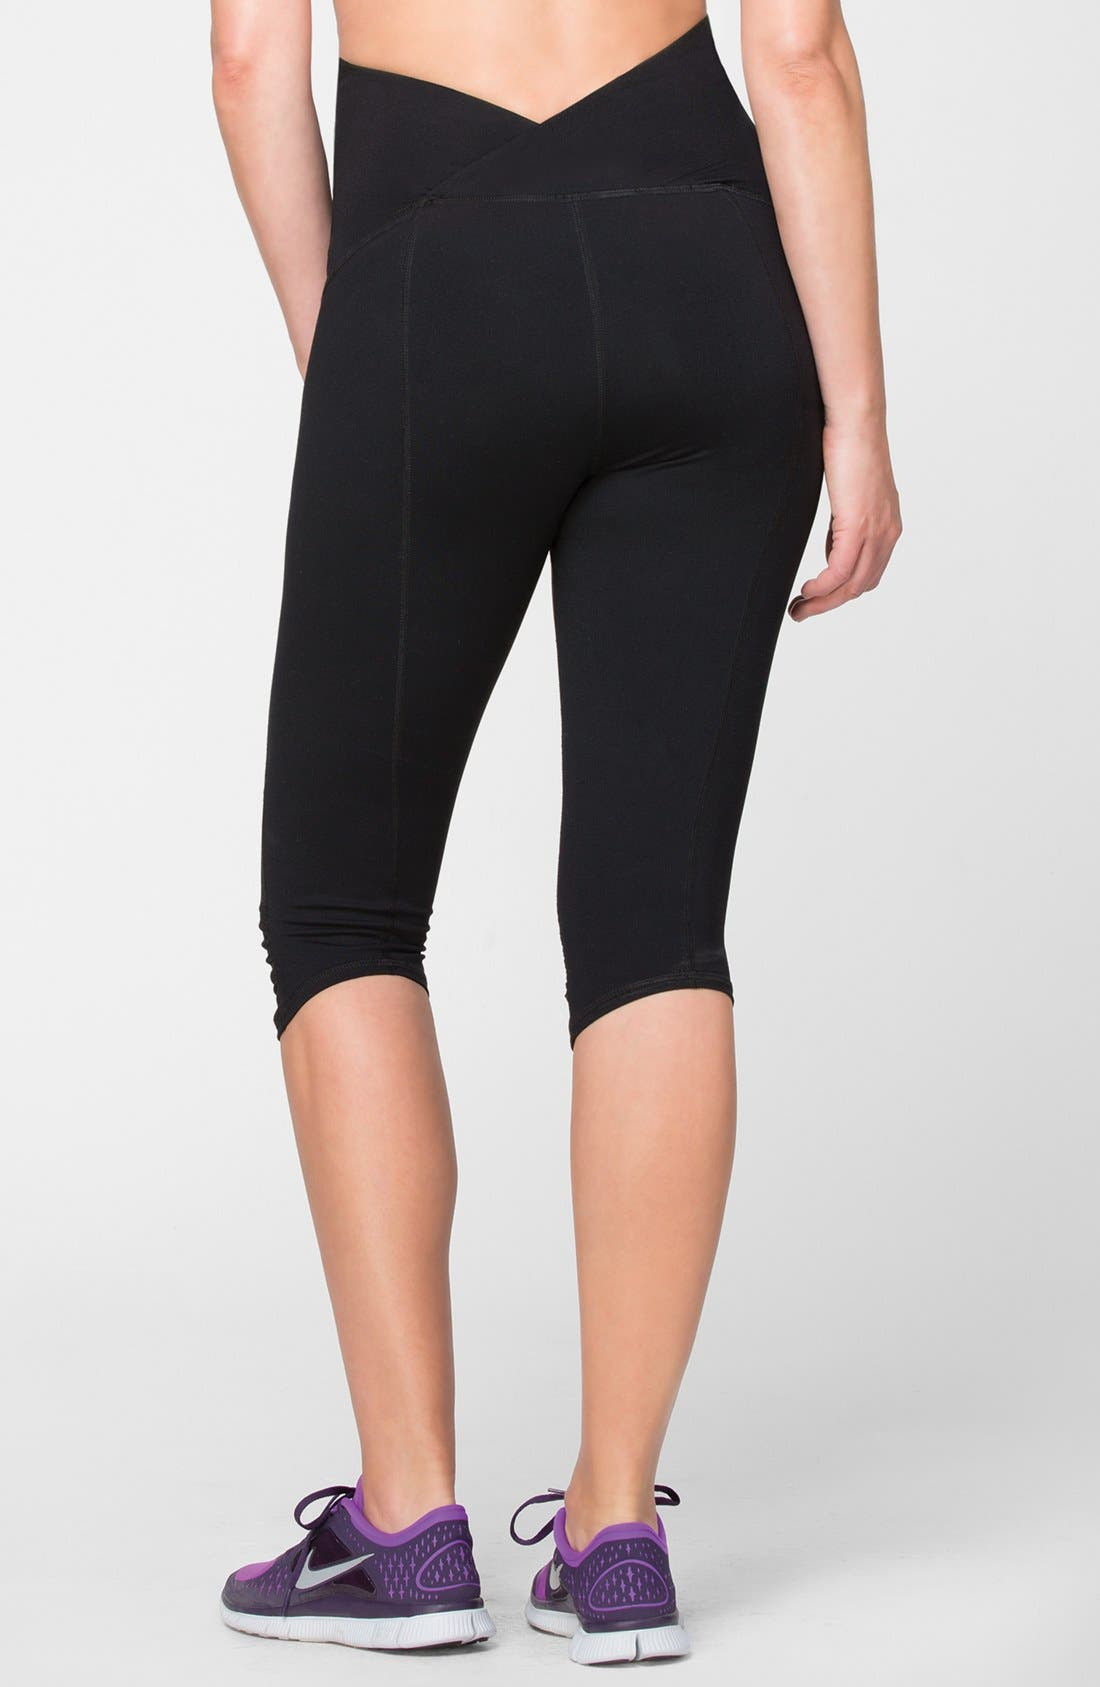 INGRID & ISABEL<SUP>®</SUP>, Knee Length Active Maternity Pants with Crossover Panel, Alternate thumbnail 2, color, JET BLACK